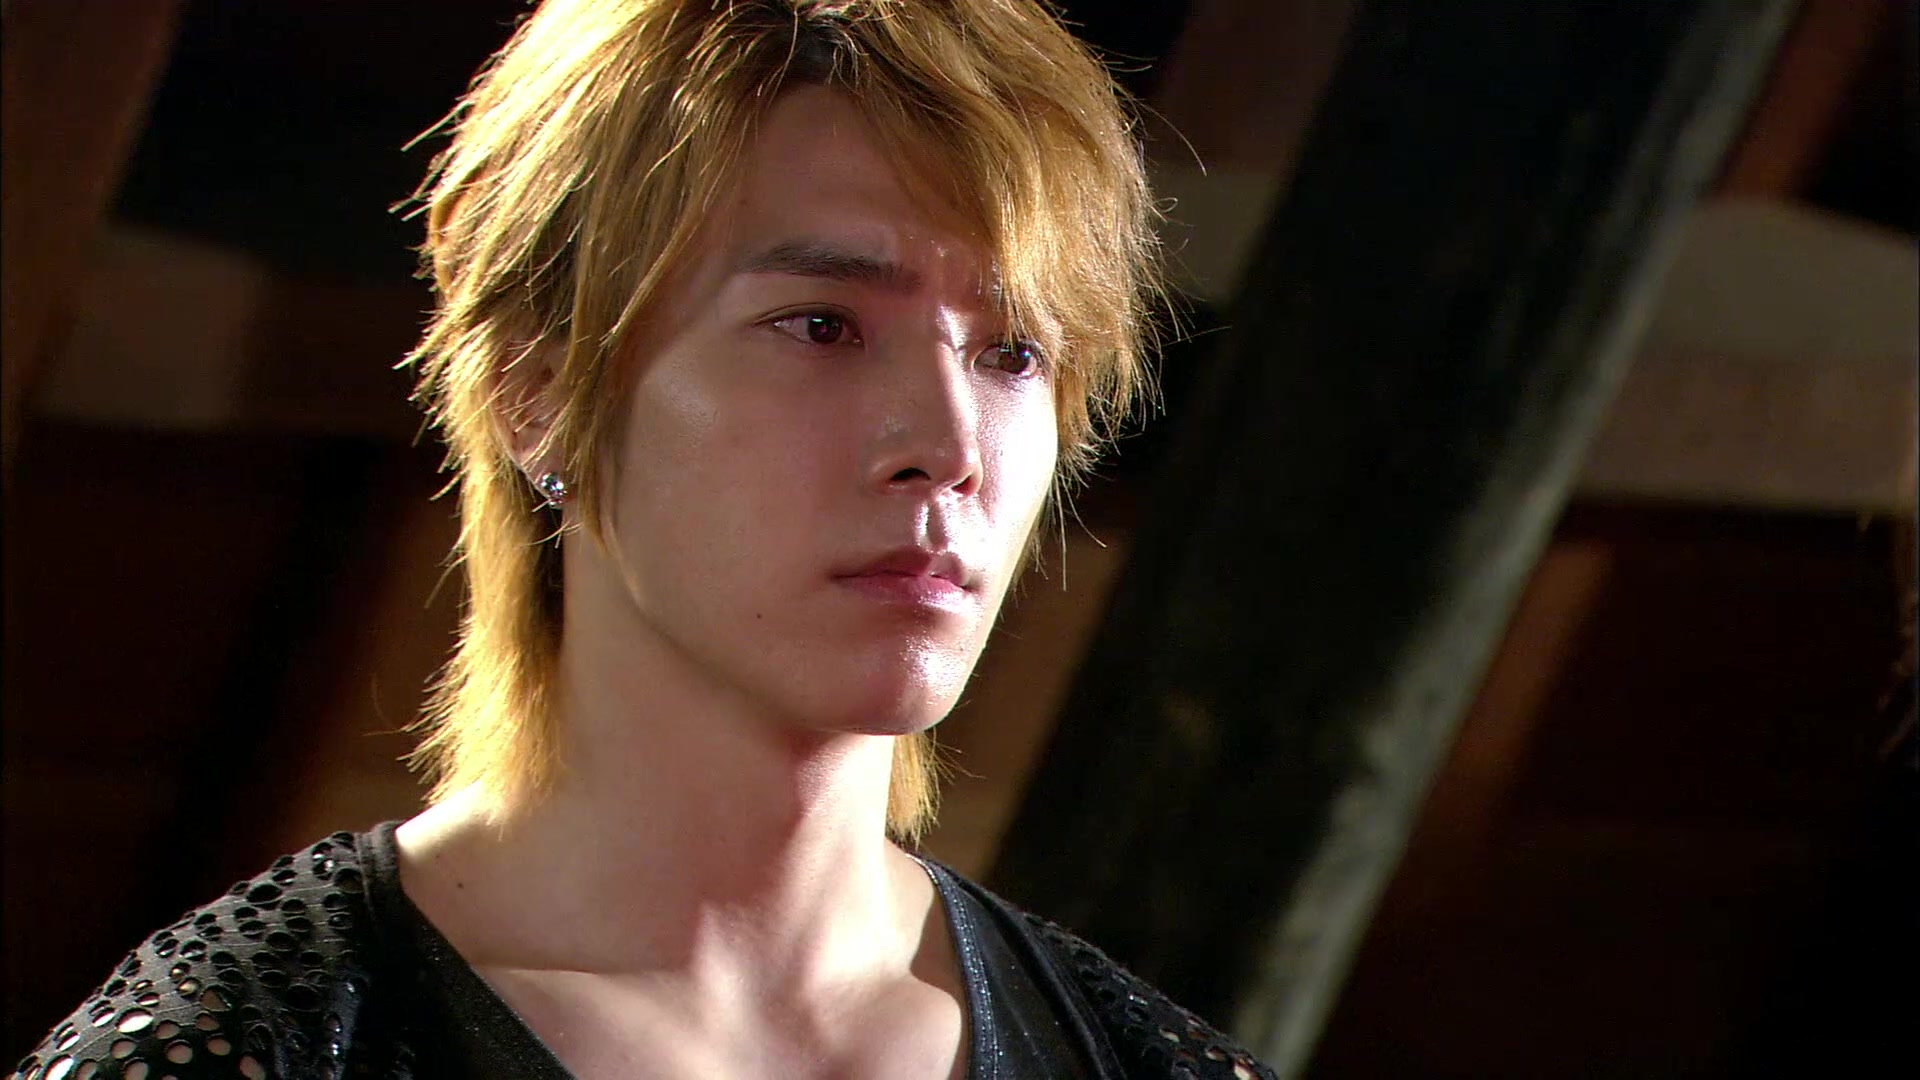 Skip Beat! Episode 11